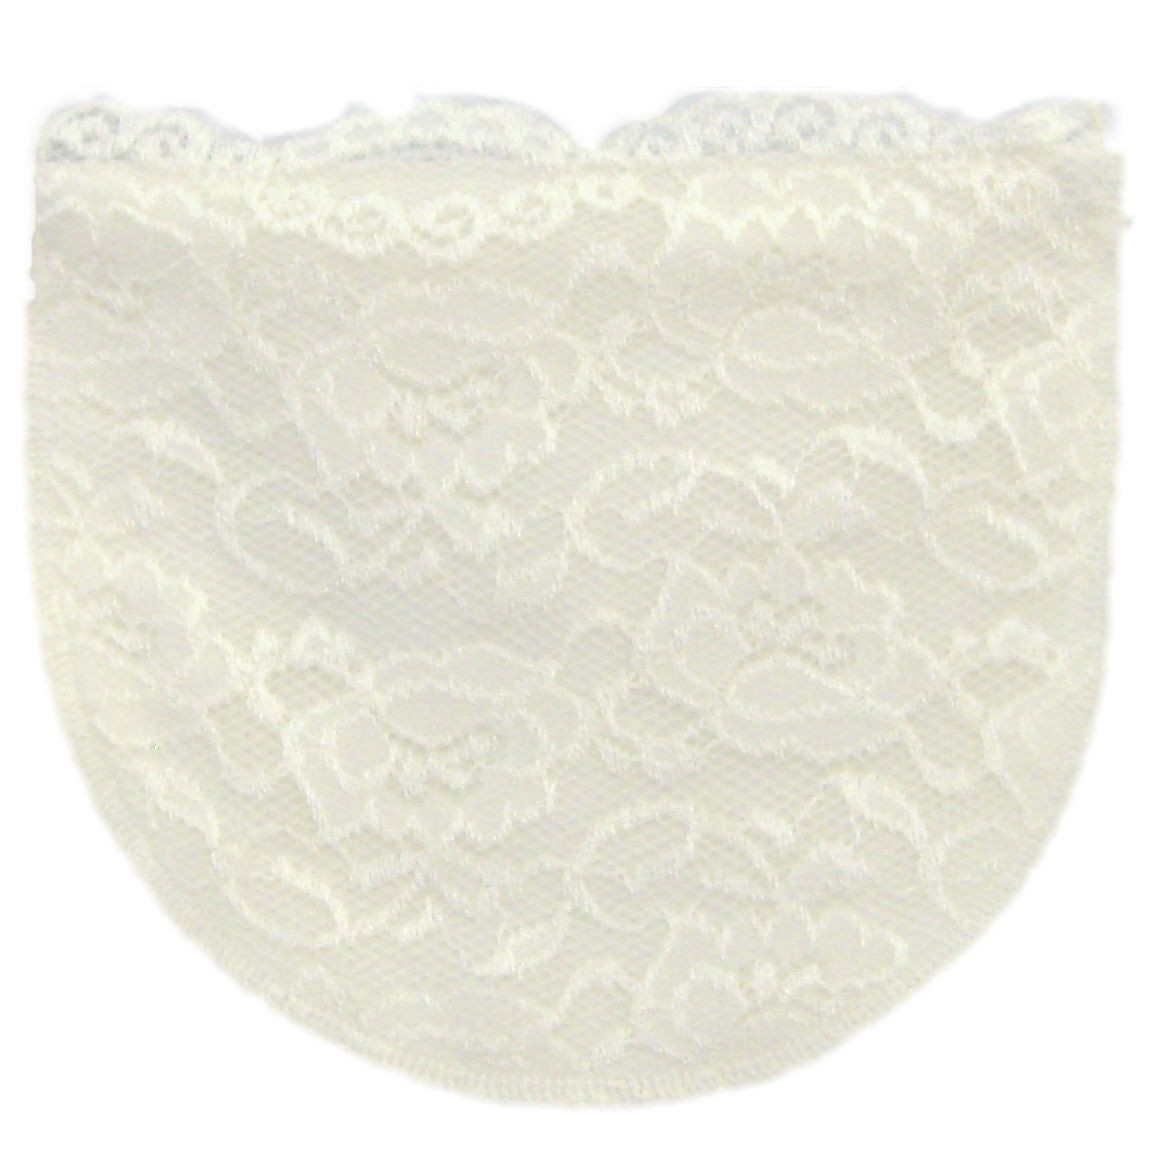 Ivory Full Lace Modesty Panel